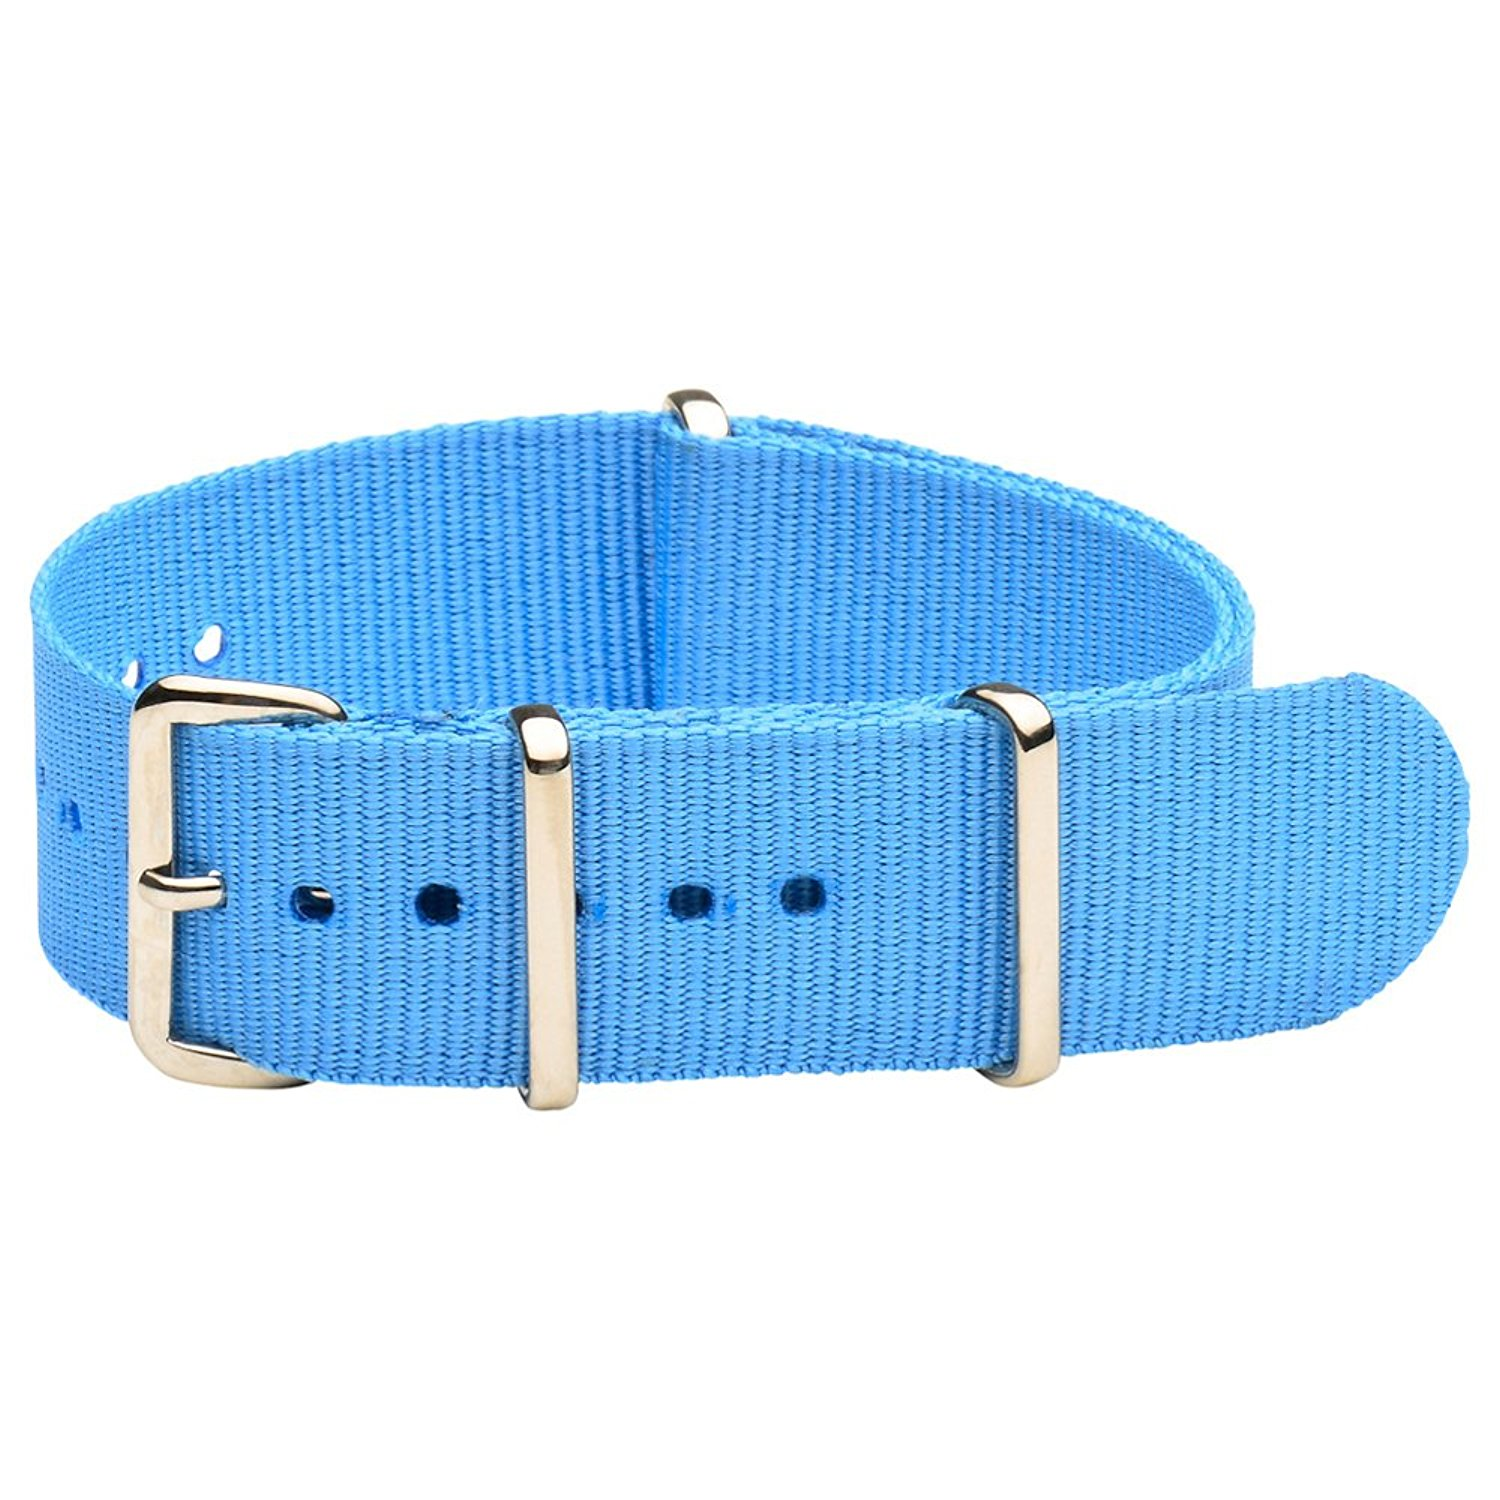 Clockwork Synergy Classic Nylon Nato watch straps bands (22mm, Sailor Blue)